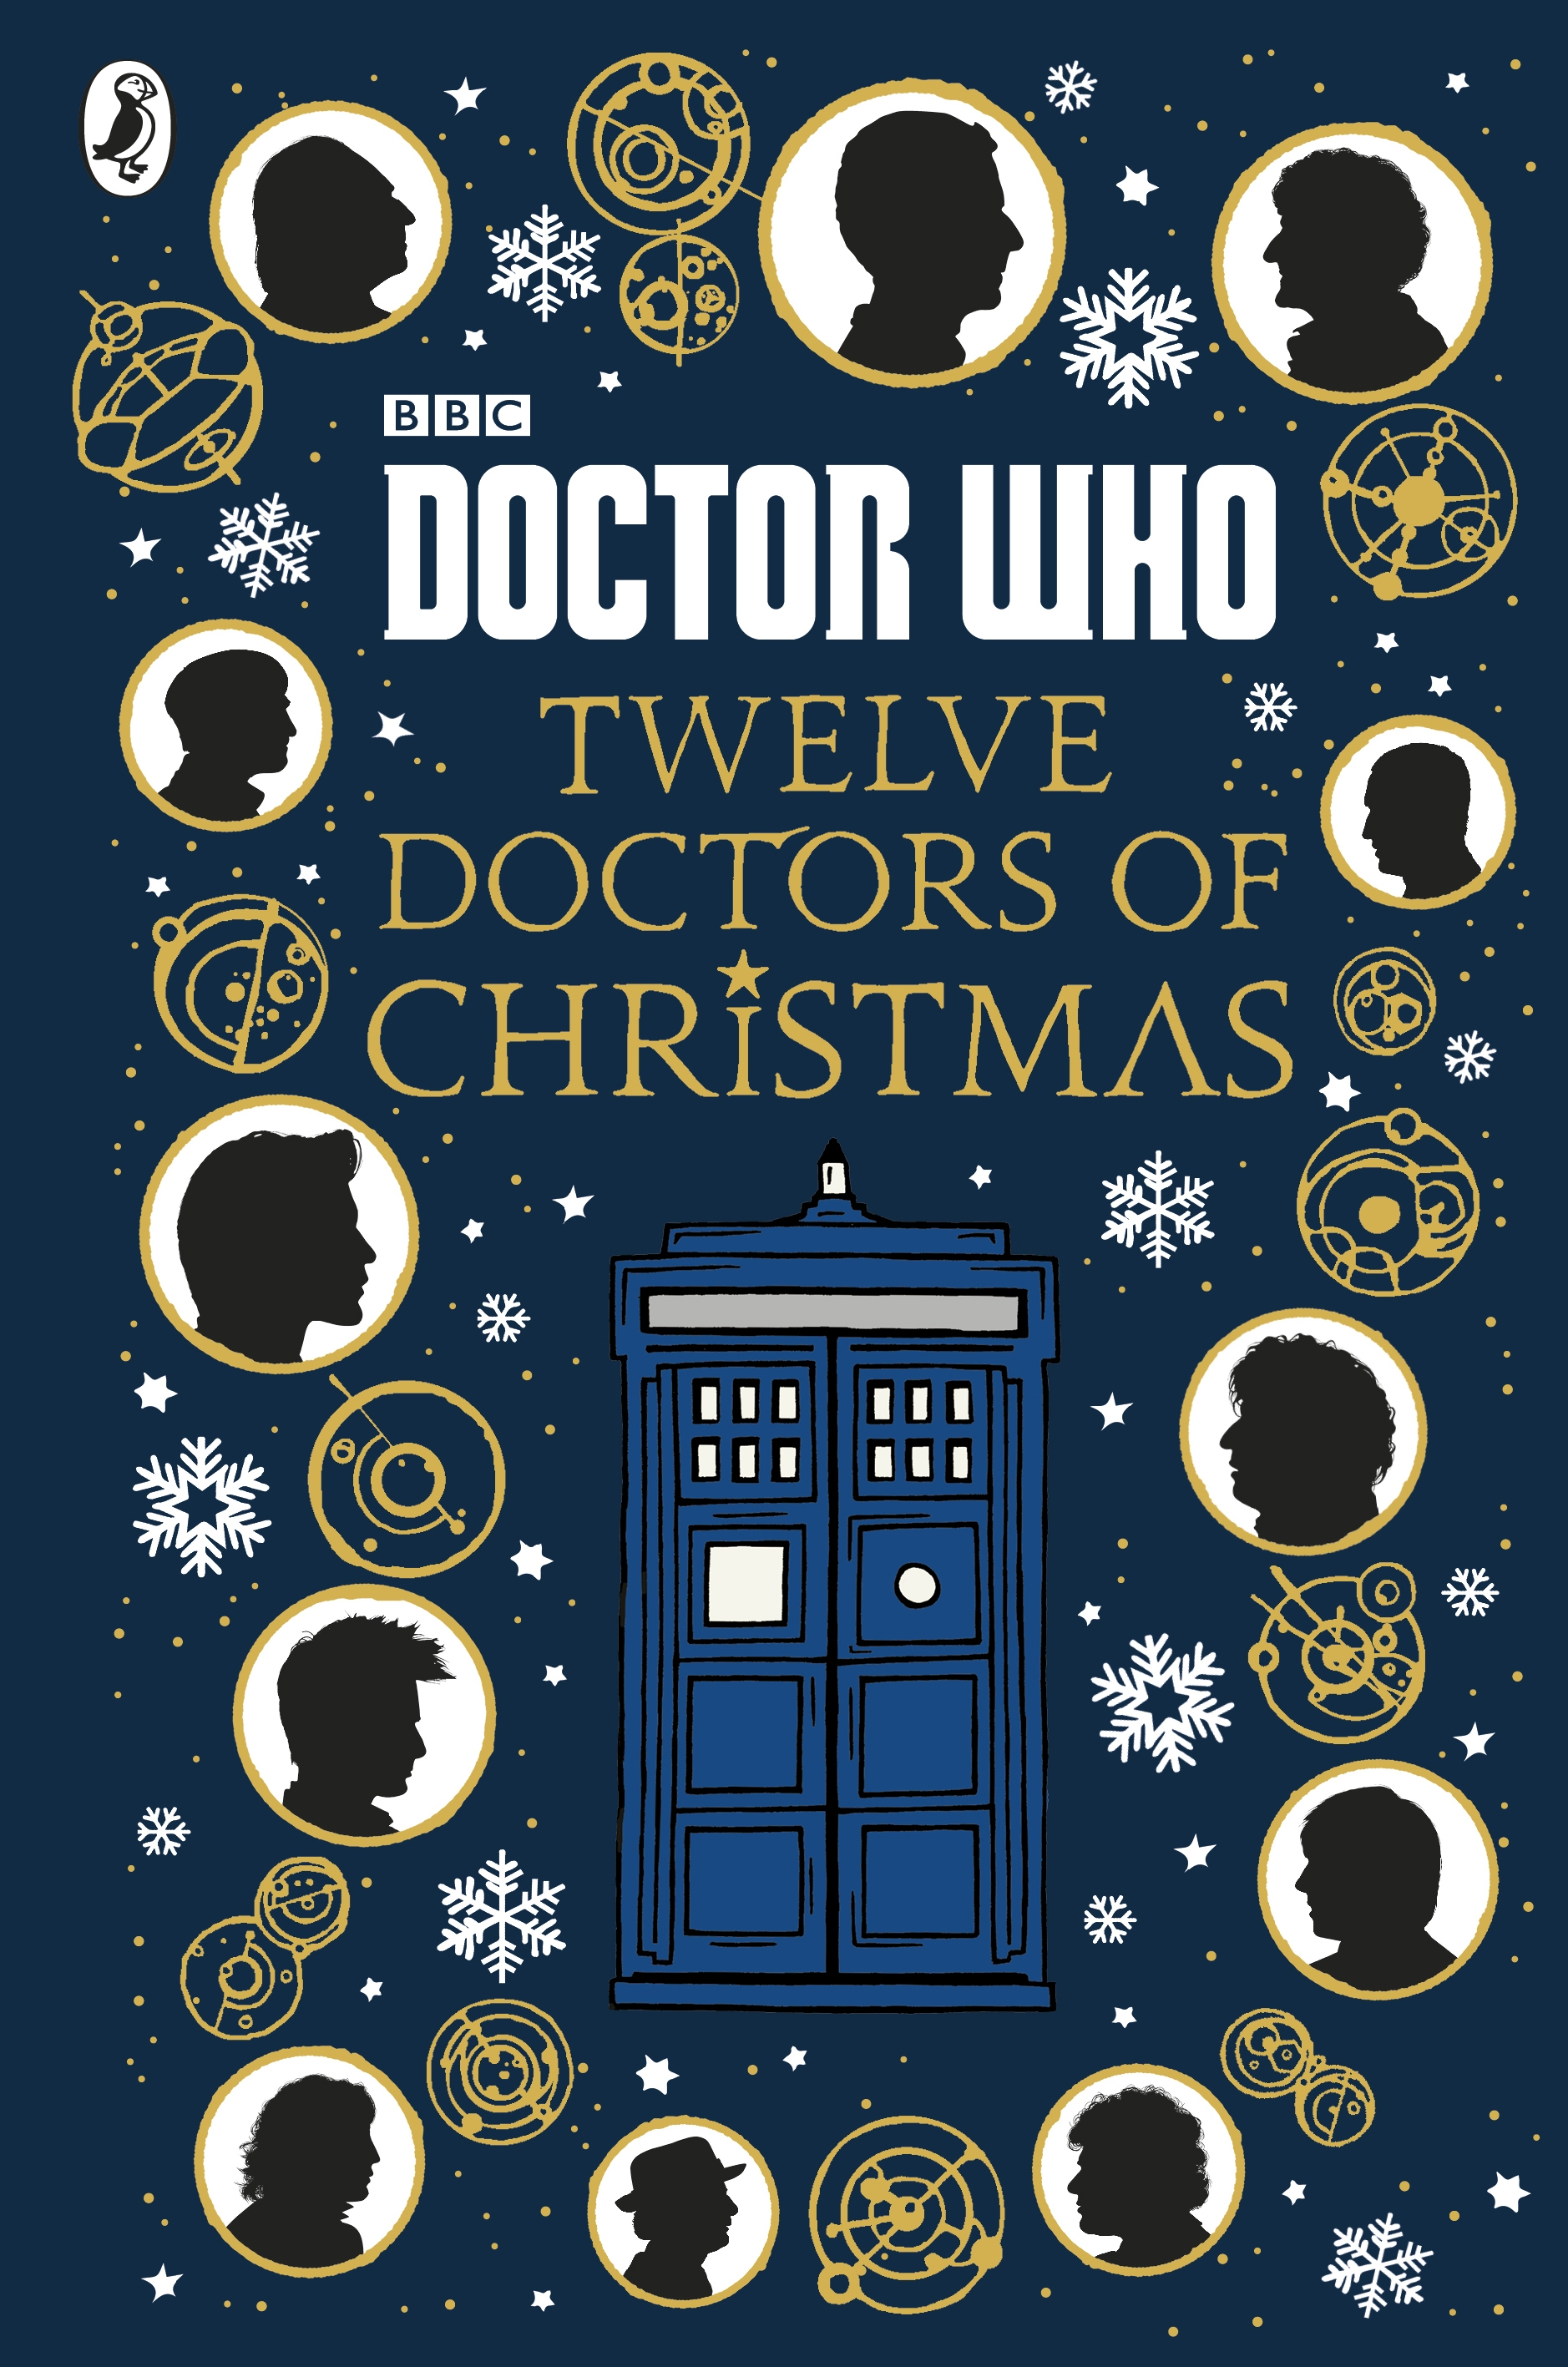 Twelve Doctors of Christmas (Credit: BBC Childrens Books)